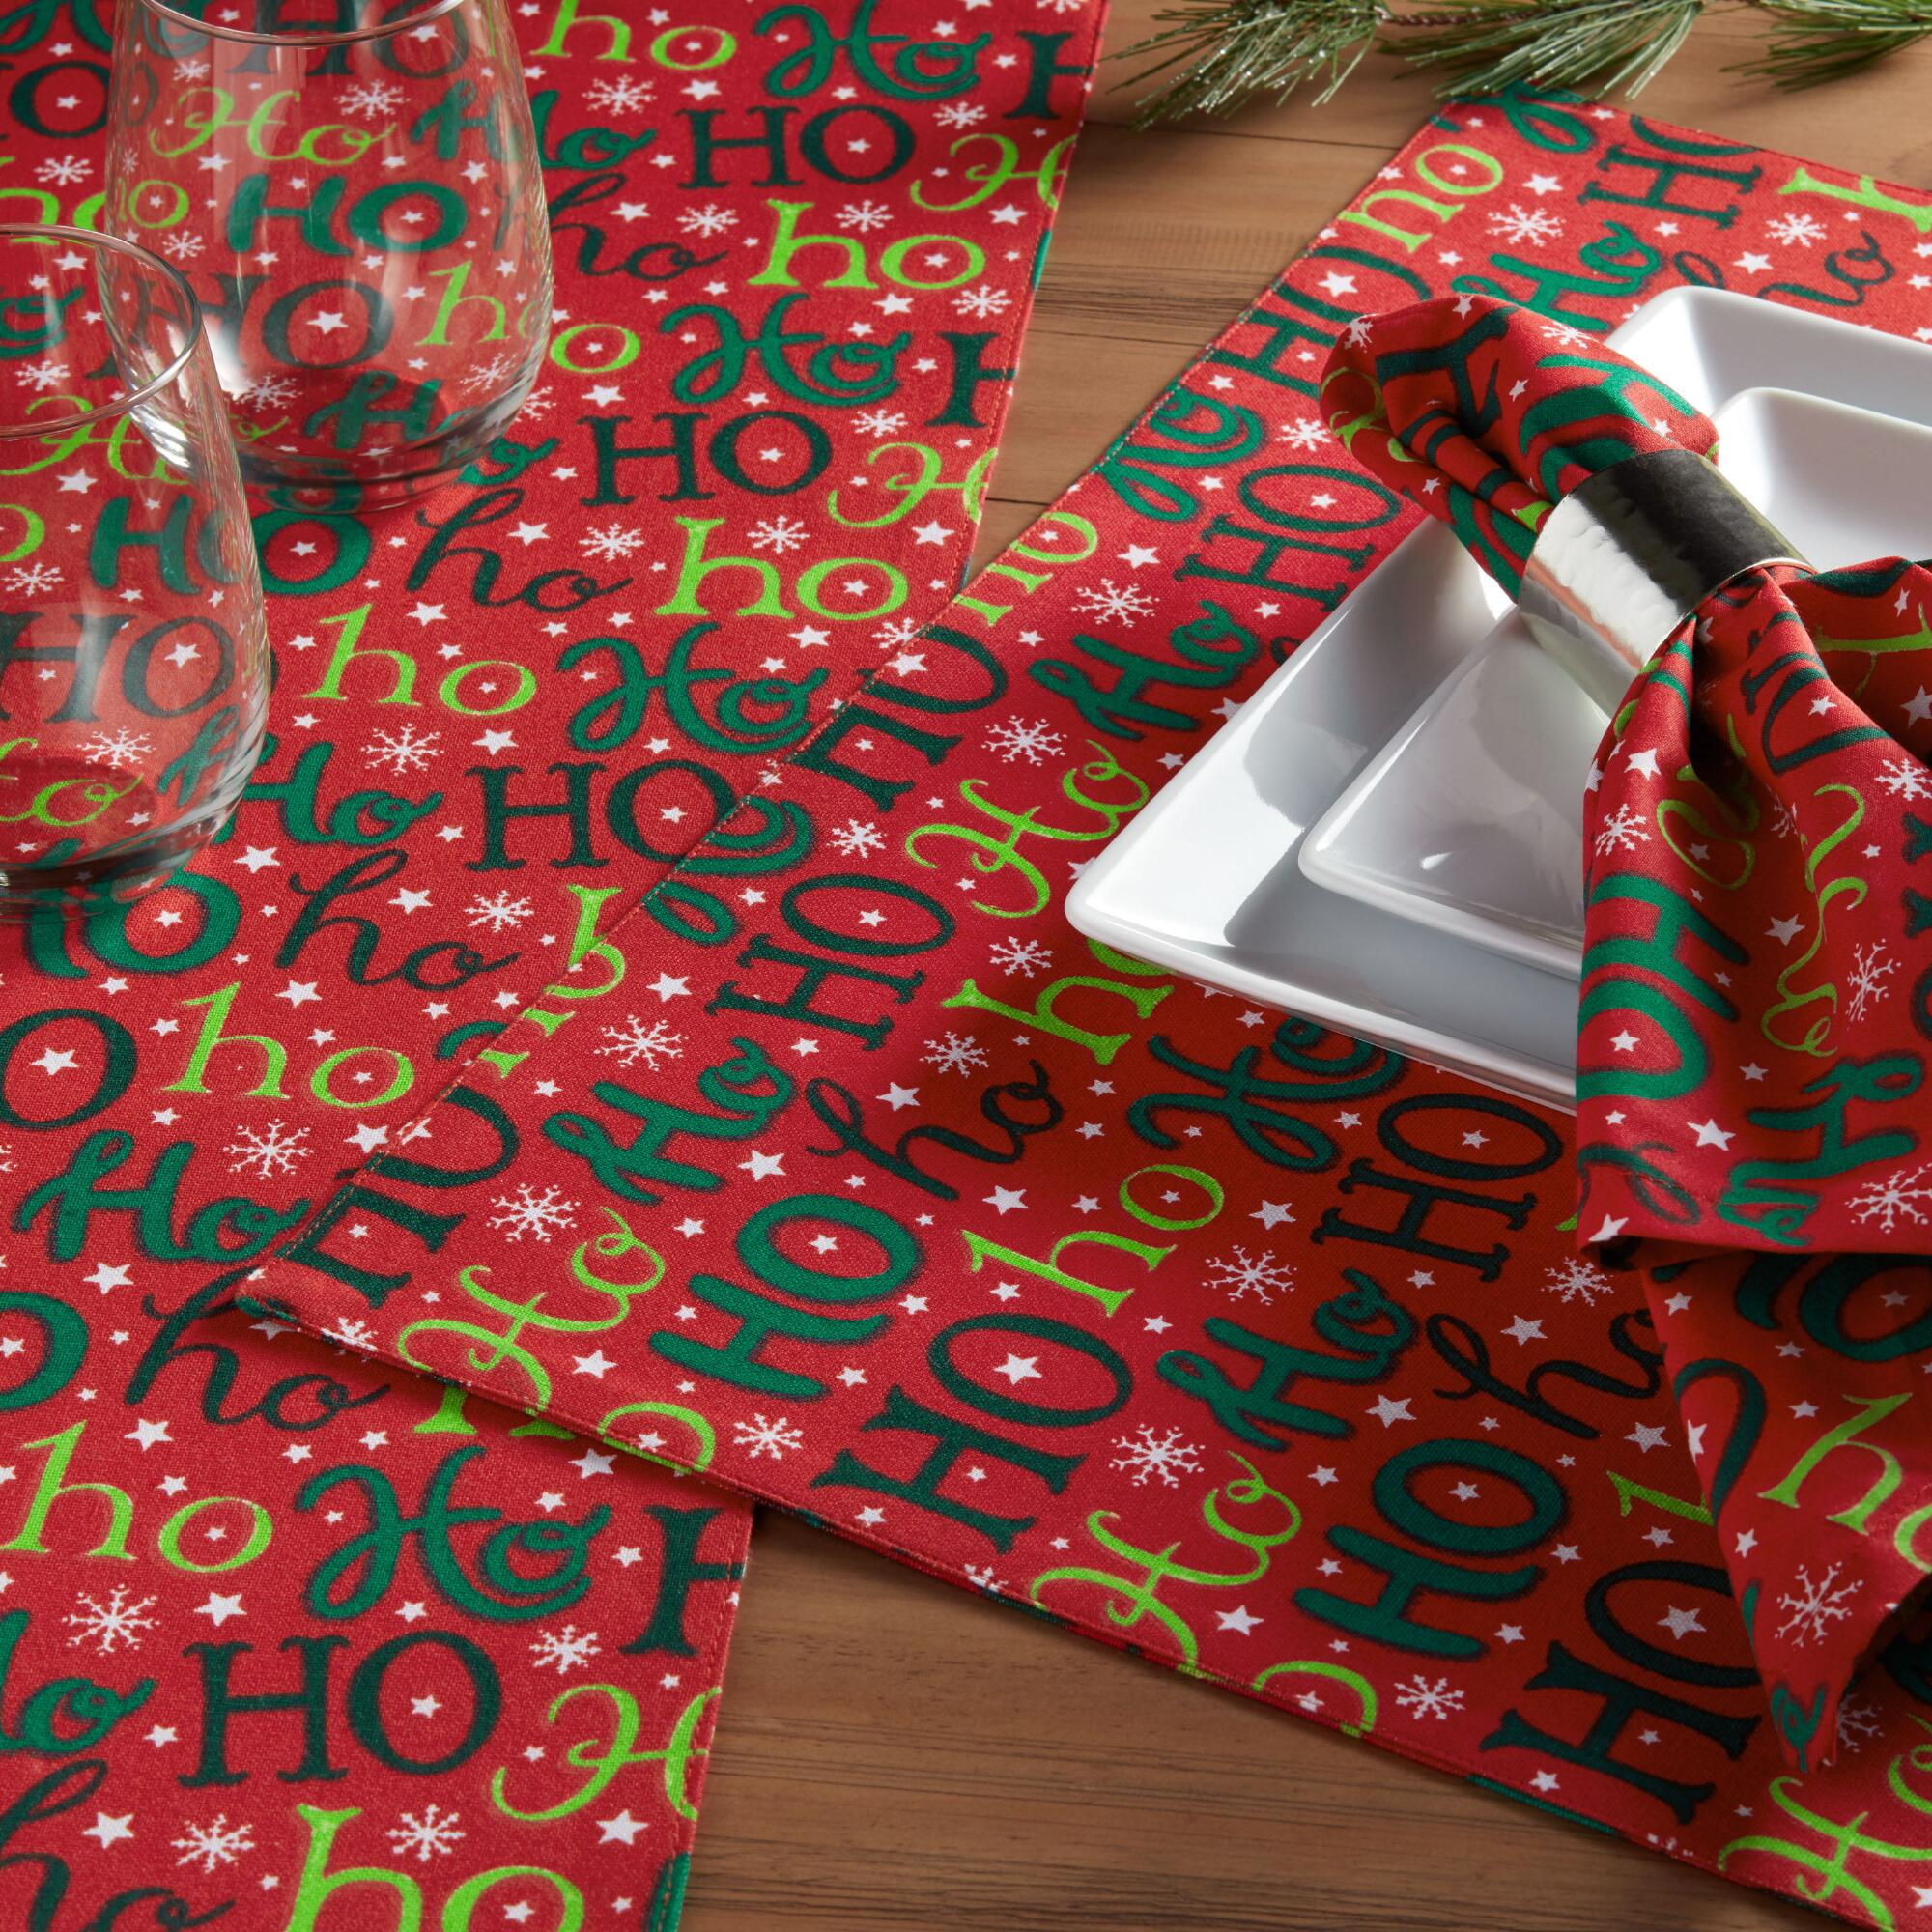 Holiday Table Linens 50% Off!